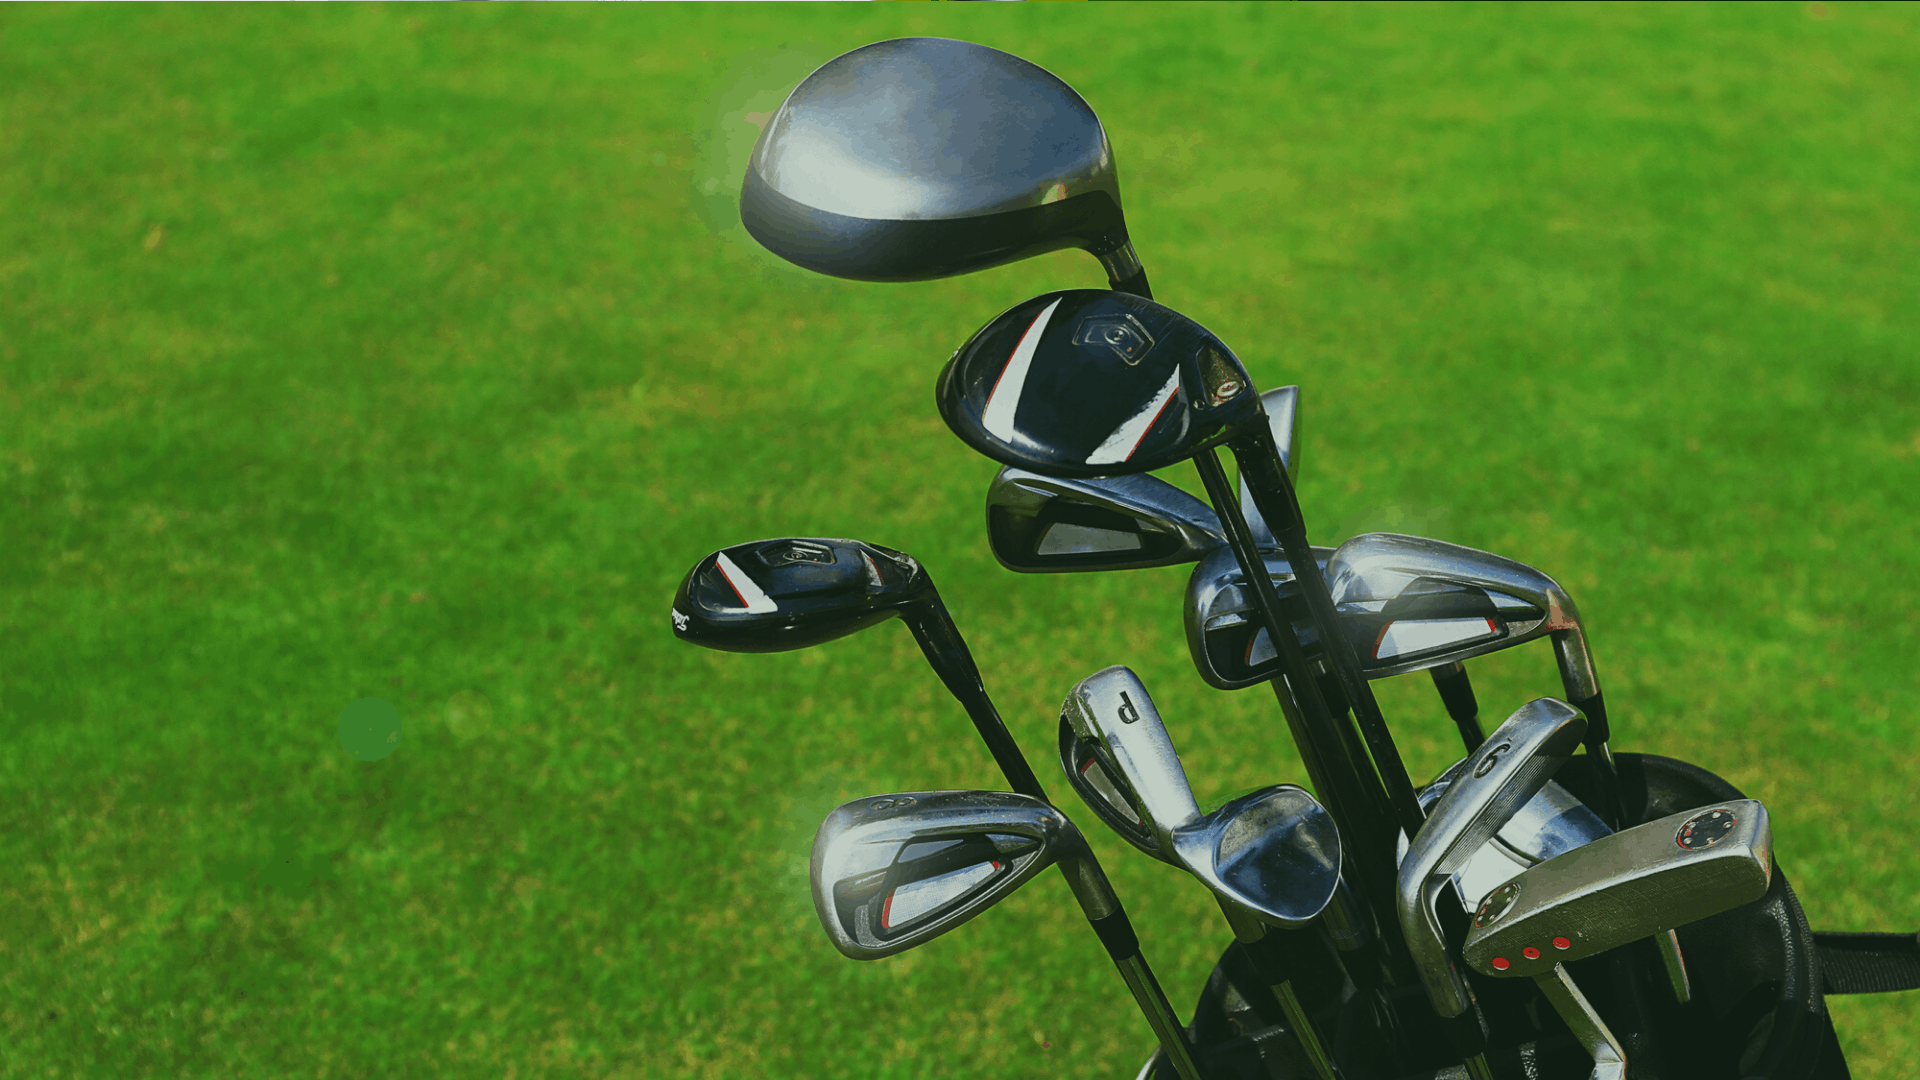 Best Hybrid Golf Clubs For High Handicappers